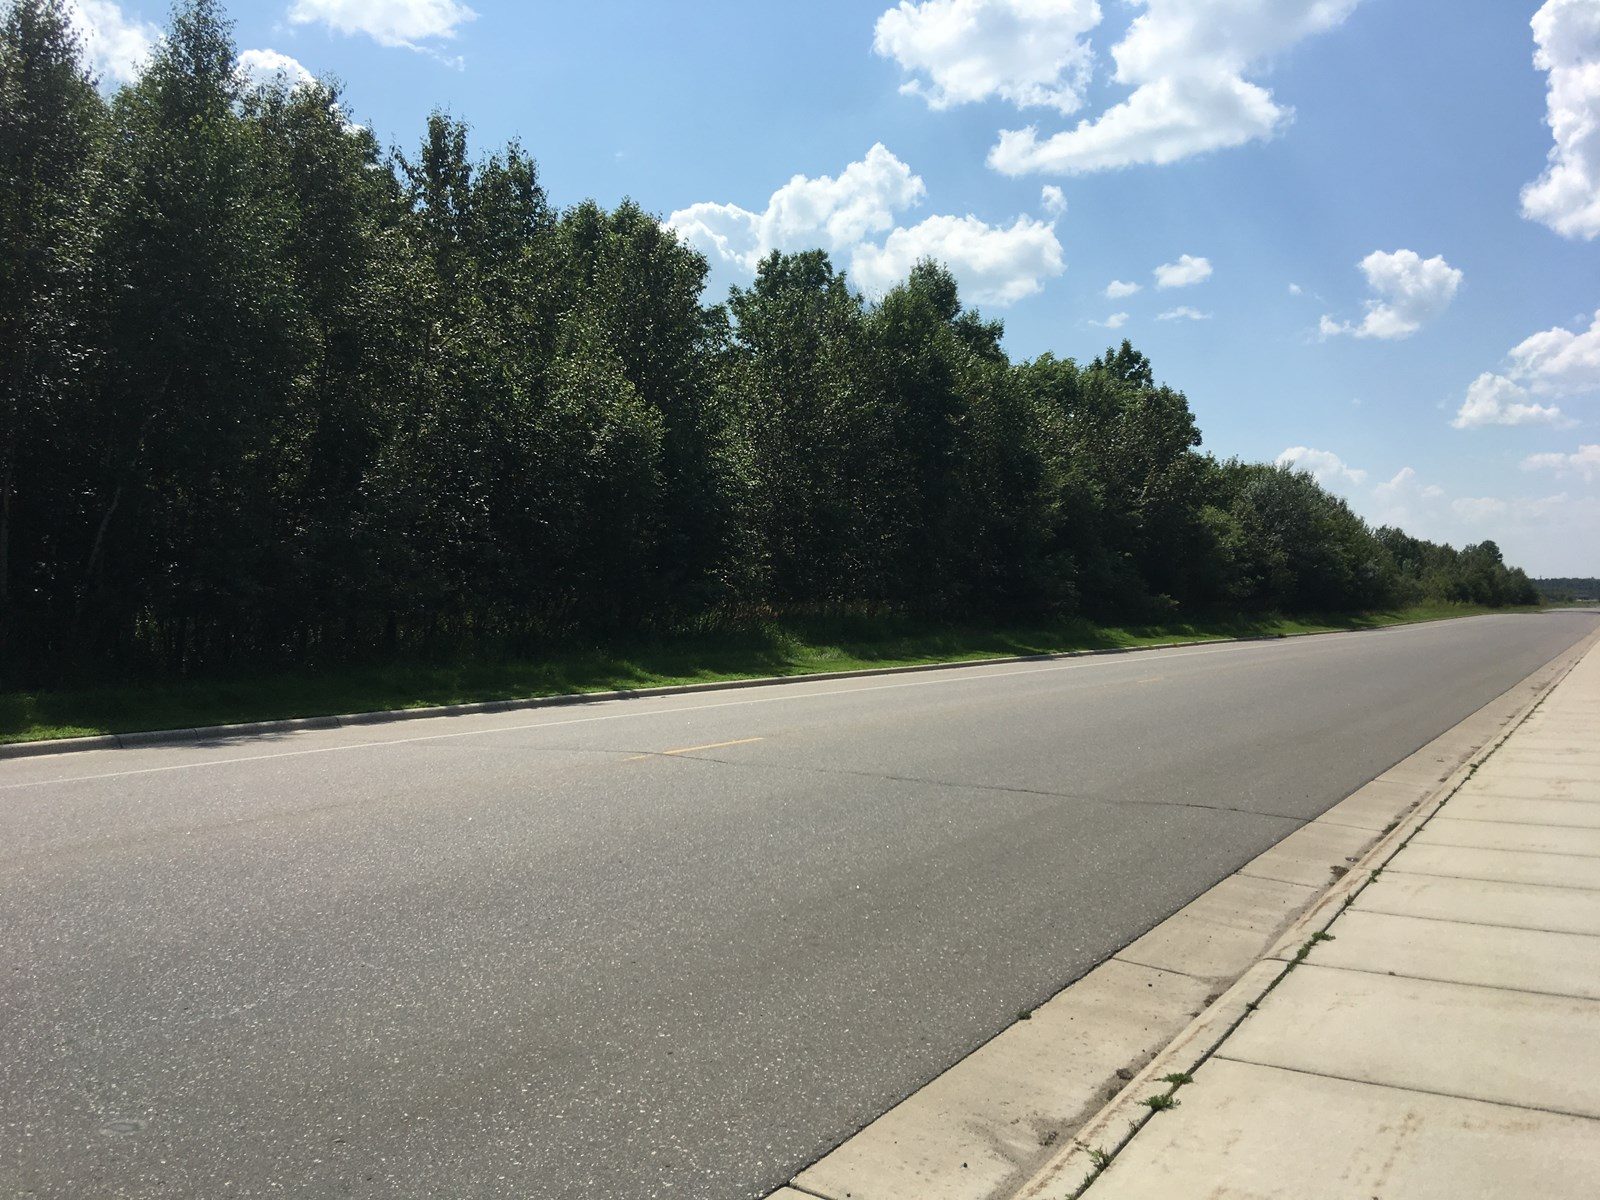 Land for sale in Northern Minnesota, Perfect location!